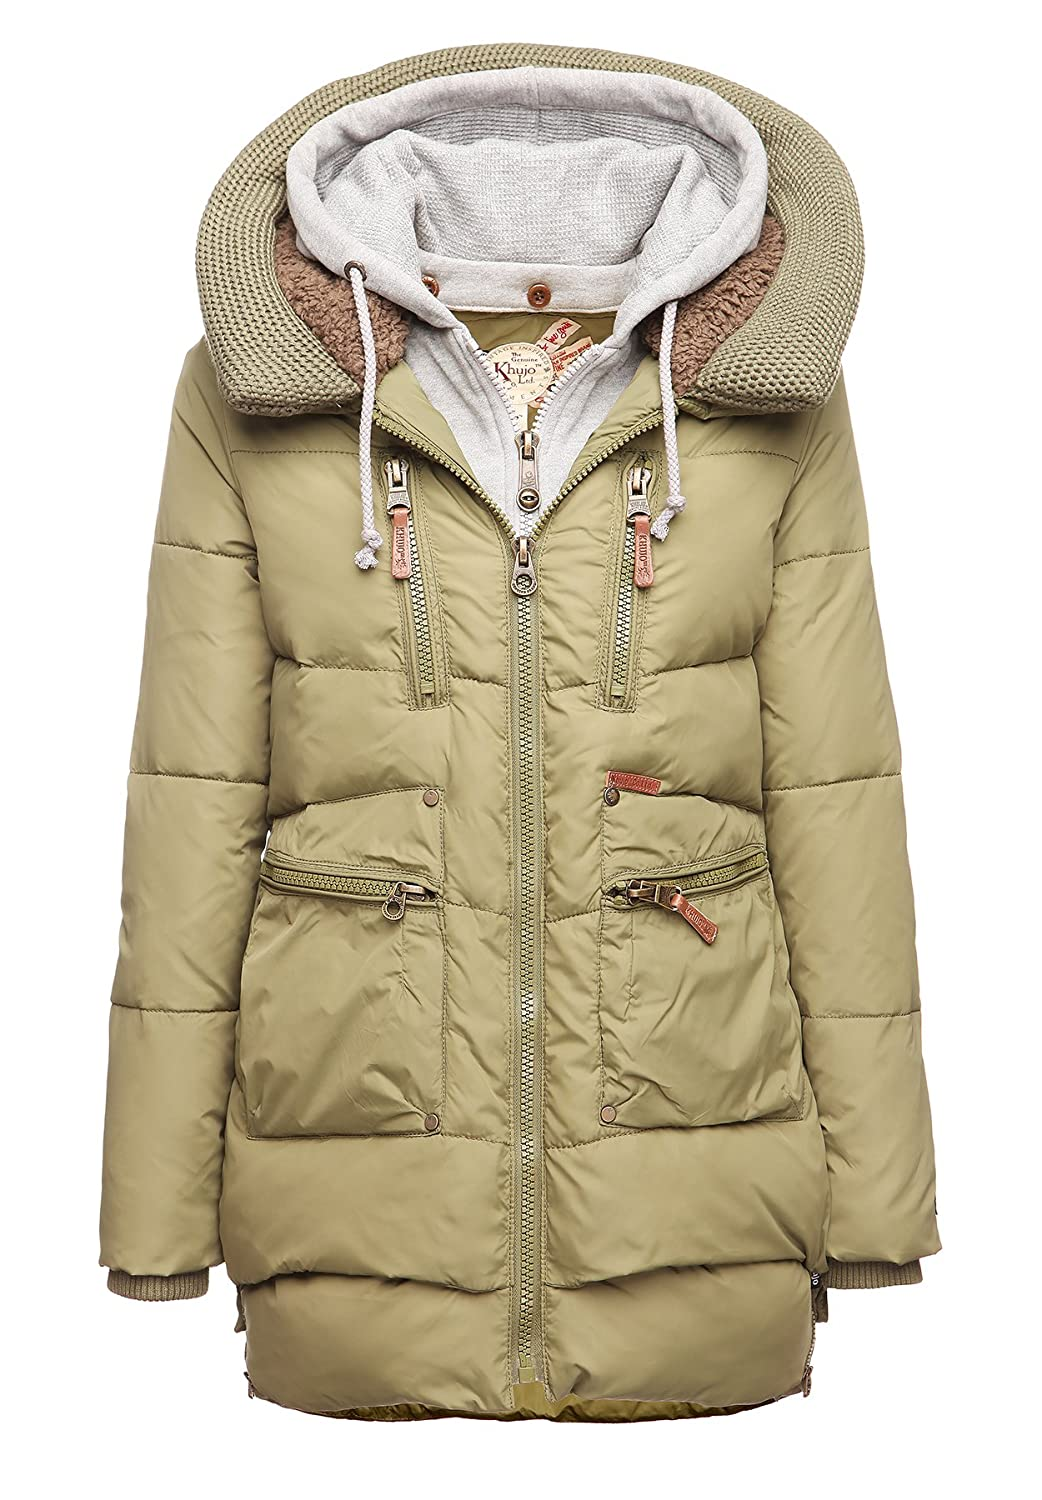 khujo Damen Jacke RILEY WITH INNER JACKET 1213JK153J_331 kaufen